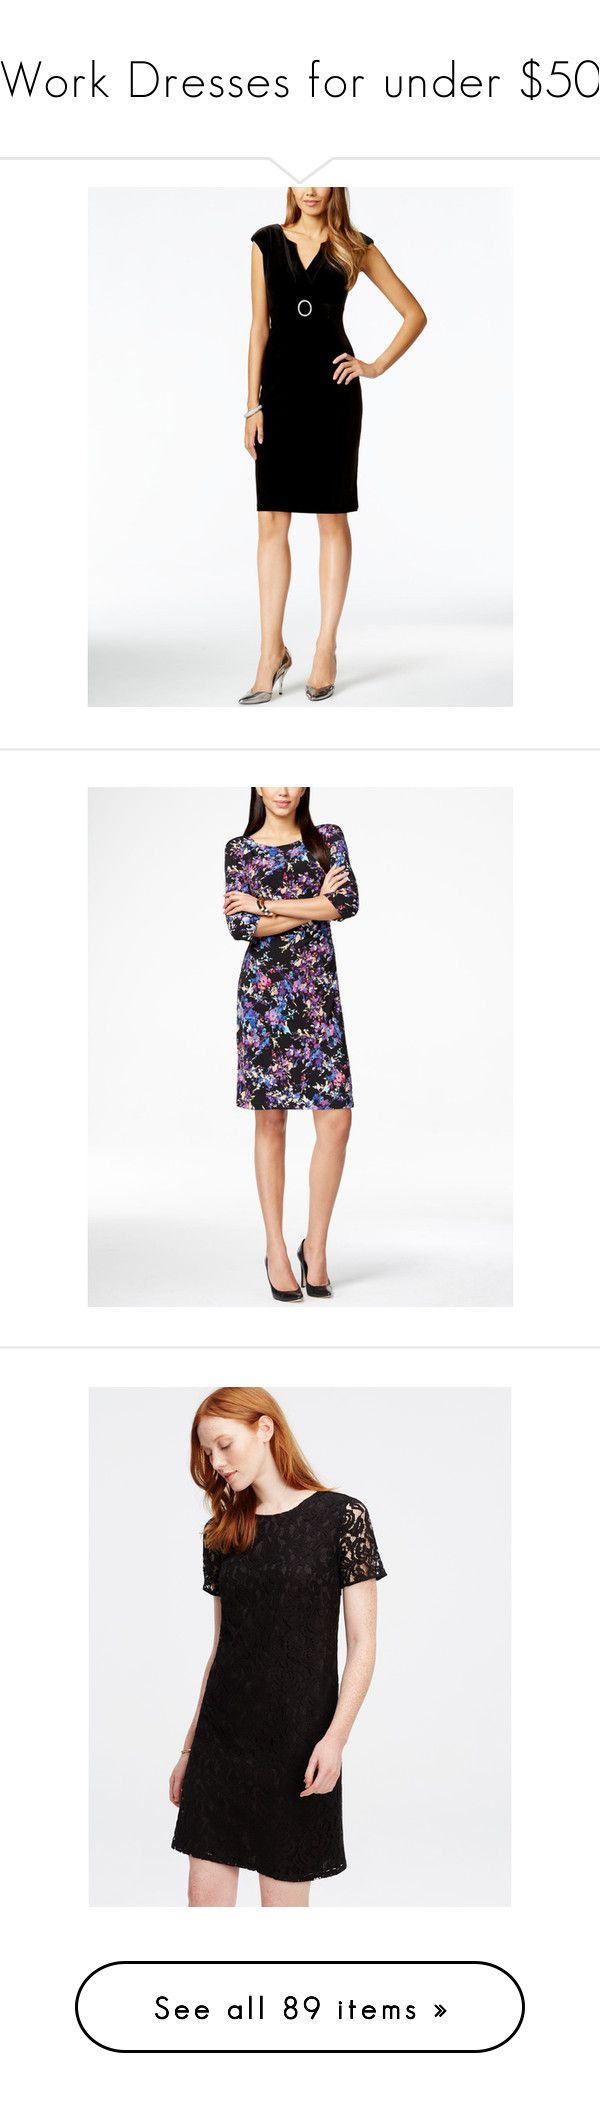 """""""Work Dresses for under $50"""" by queenieff ❤ liked on Polyvore featuring dresses, black, cocktail party dress, going out dresses, petite party dresses, sheath cocktail dress, buckle dresses, blk multi, white floral print dress and petite floral dress"""